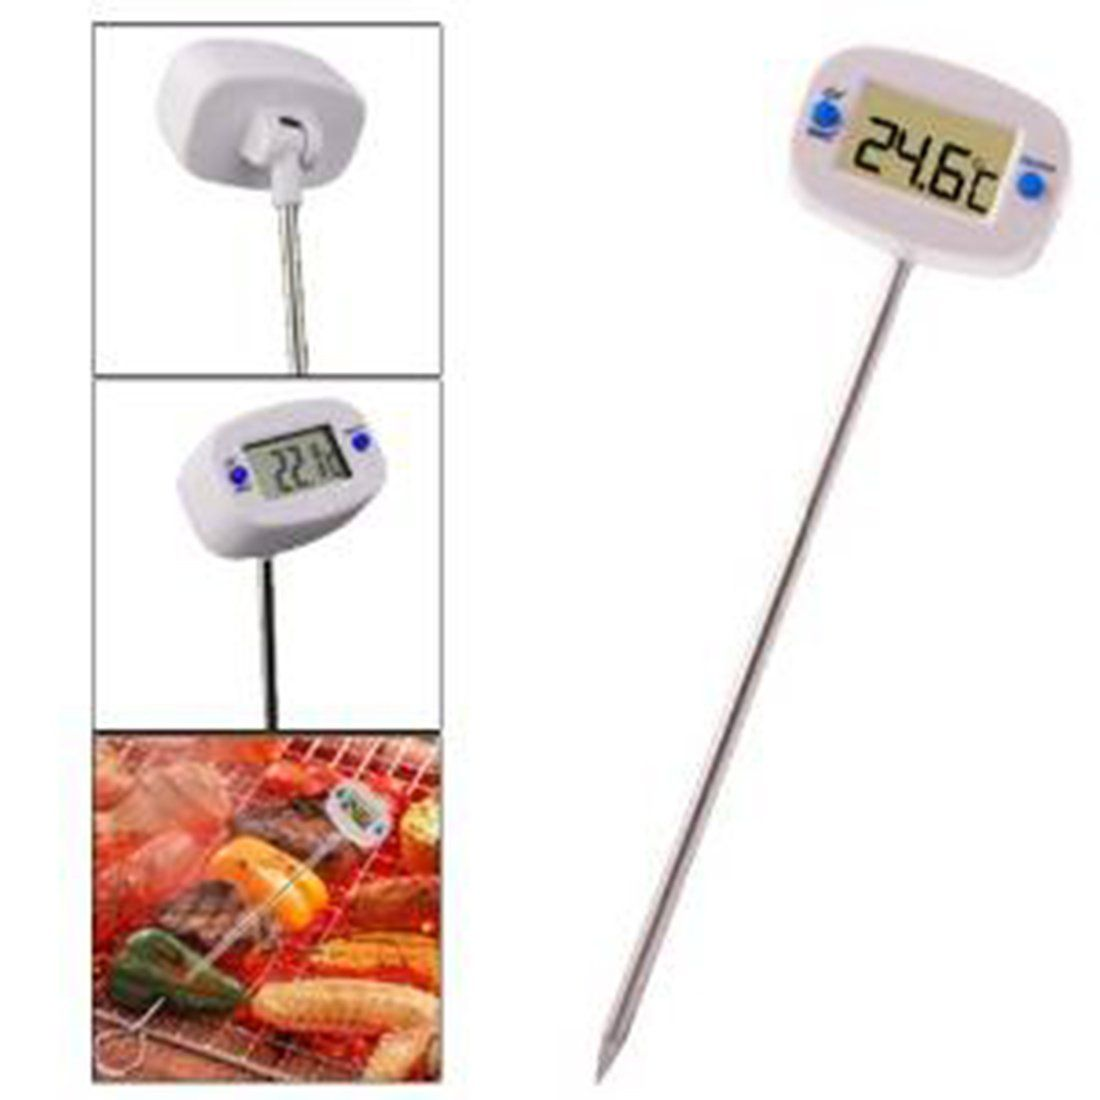 Hot Digital Probe Cooking Thermometer Food Temperature Sensor For